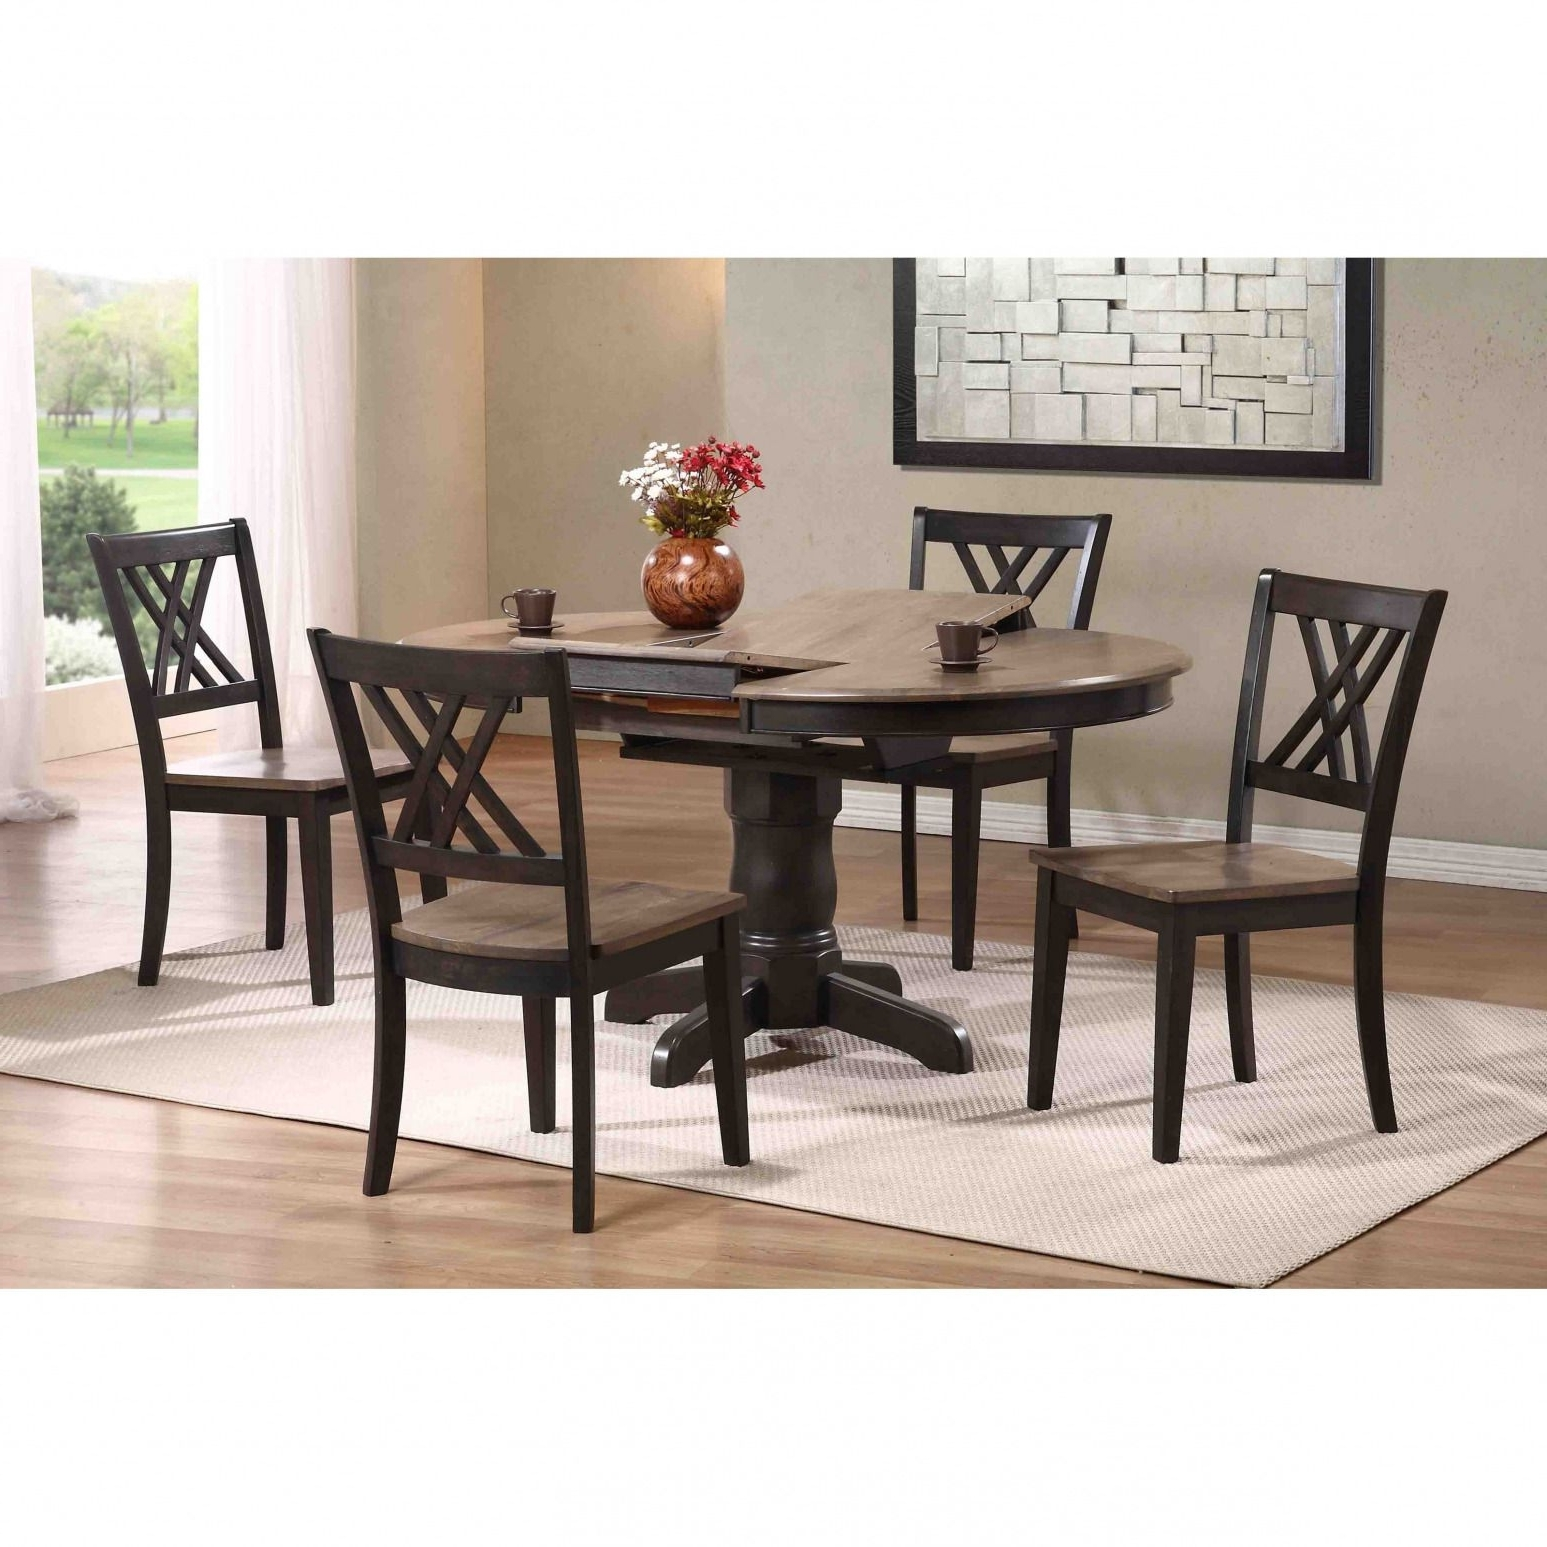 Well Liked Round 6 Person Dining Tables Throughout 100+ Round 6 Person Dining Table – Best Office Furniture Check More (View 25 of 25)